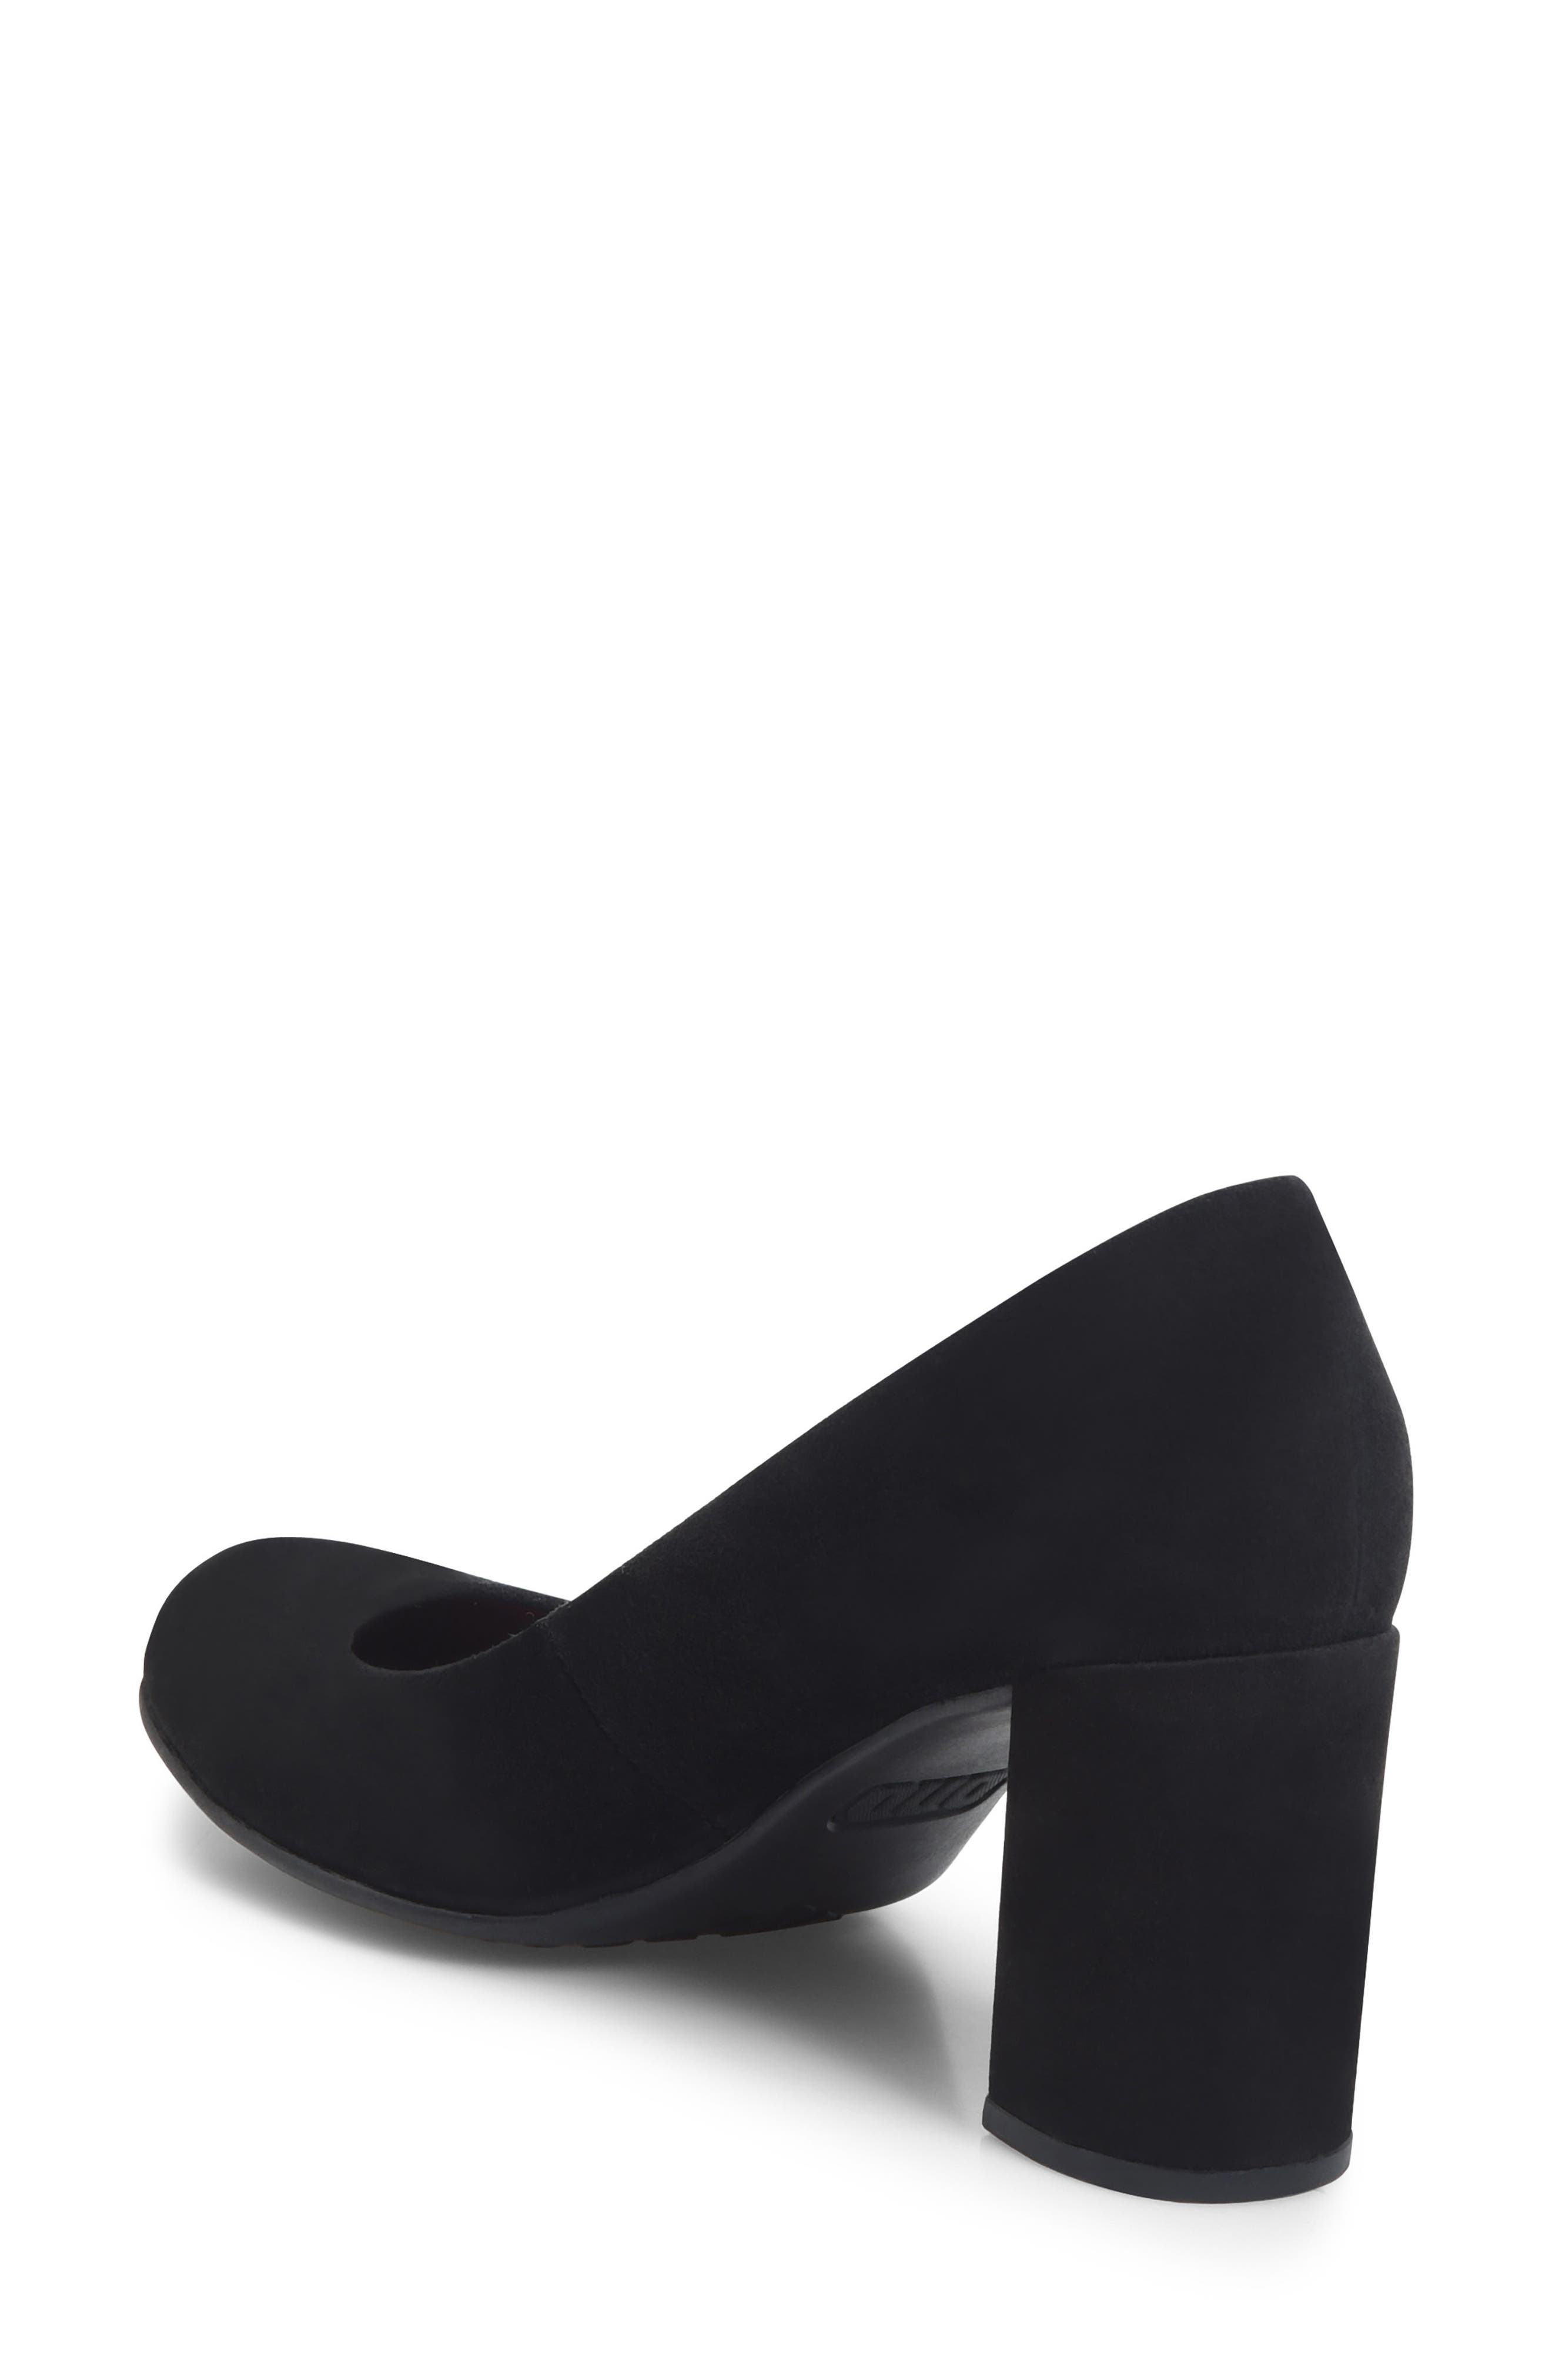 Alpena Block Heel Pump,                             Alternate thumbnail 2, color,                             BLACK SUEDE